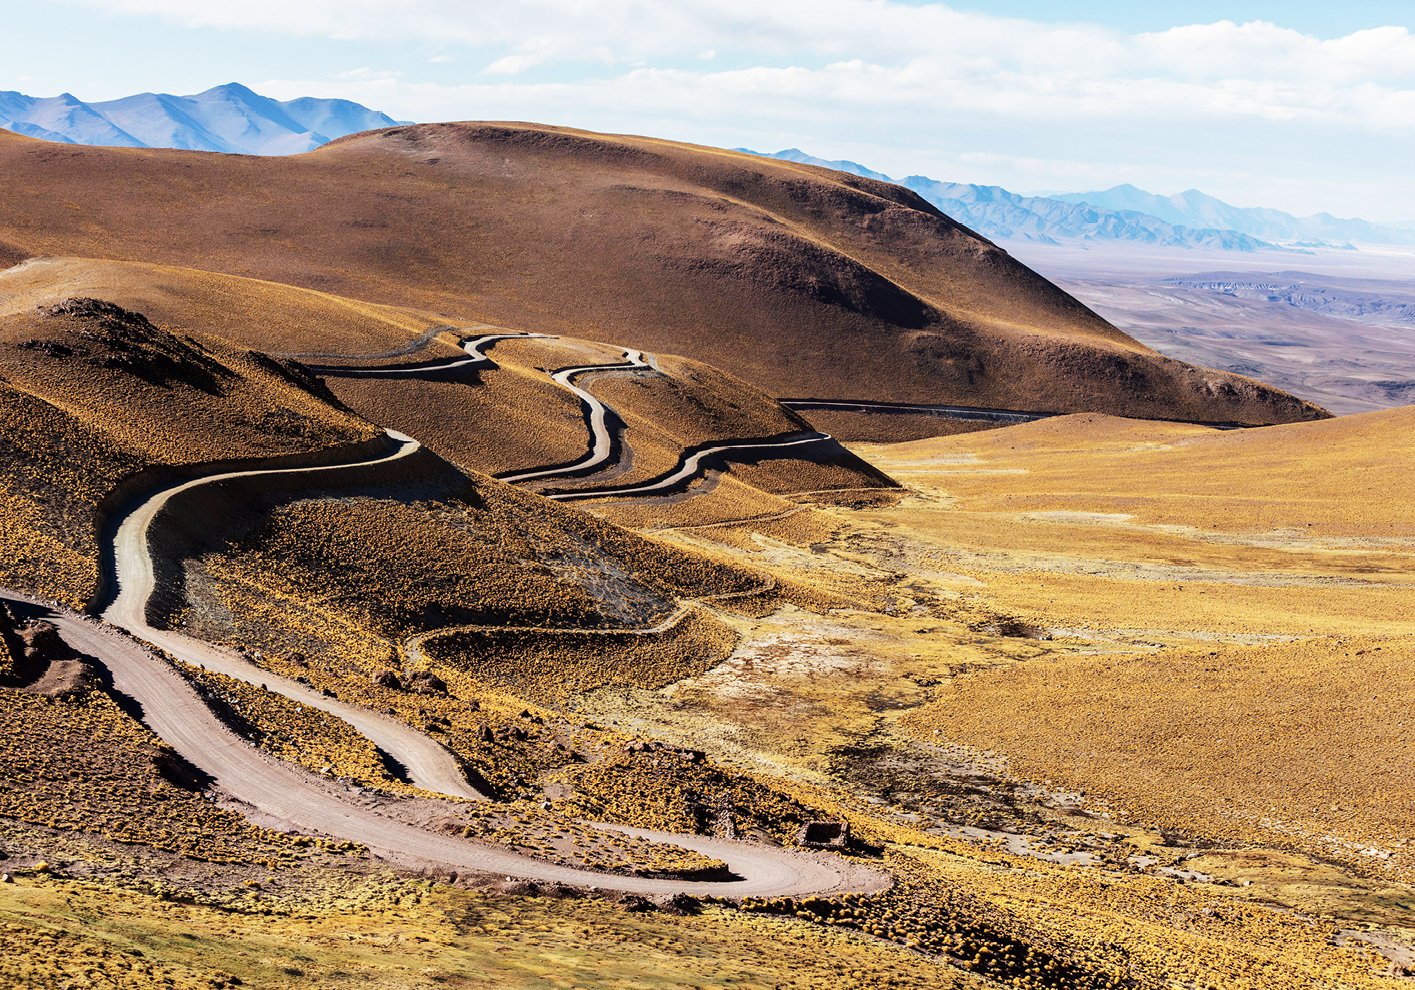 The winding R40 'highway' through the Andes